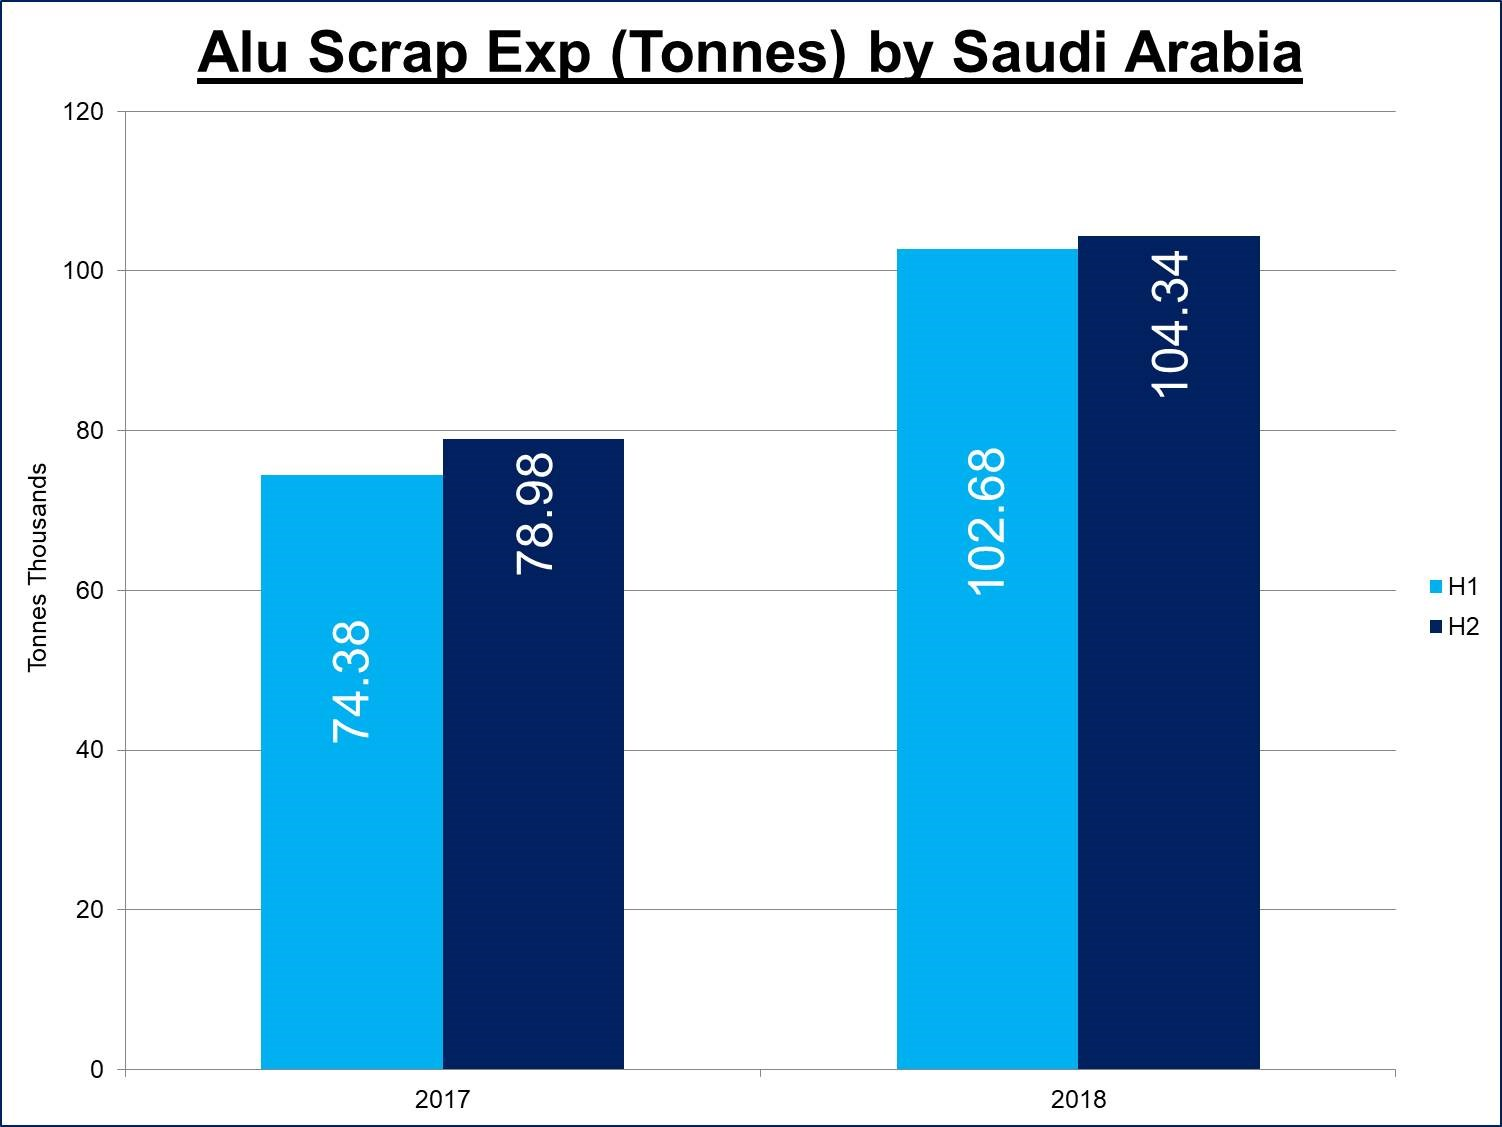 Saudi Arabia's aluminium scrap exports to continue rising in H1 2018